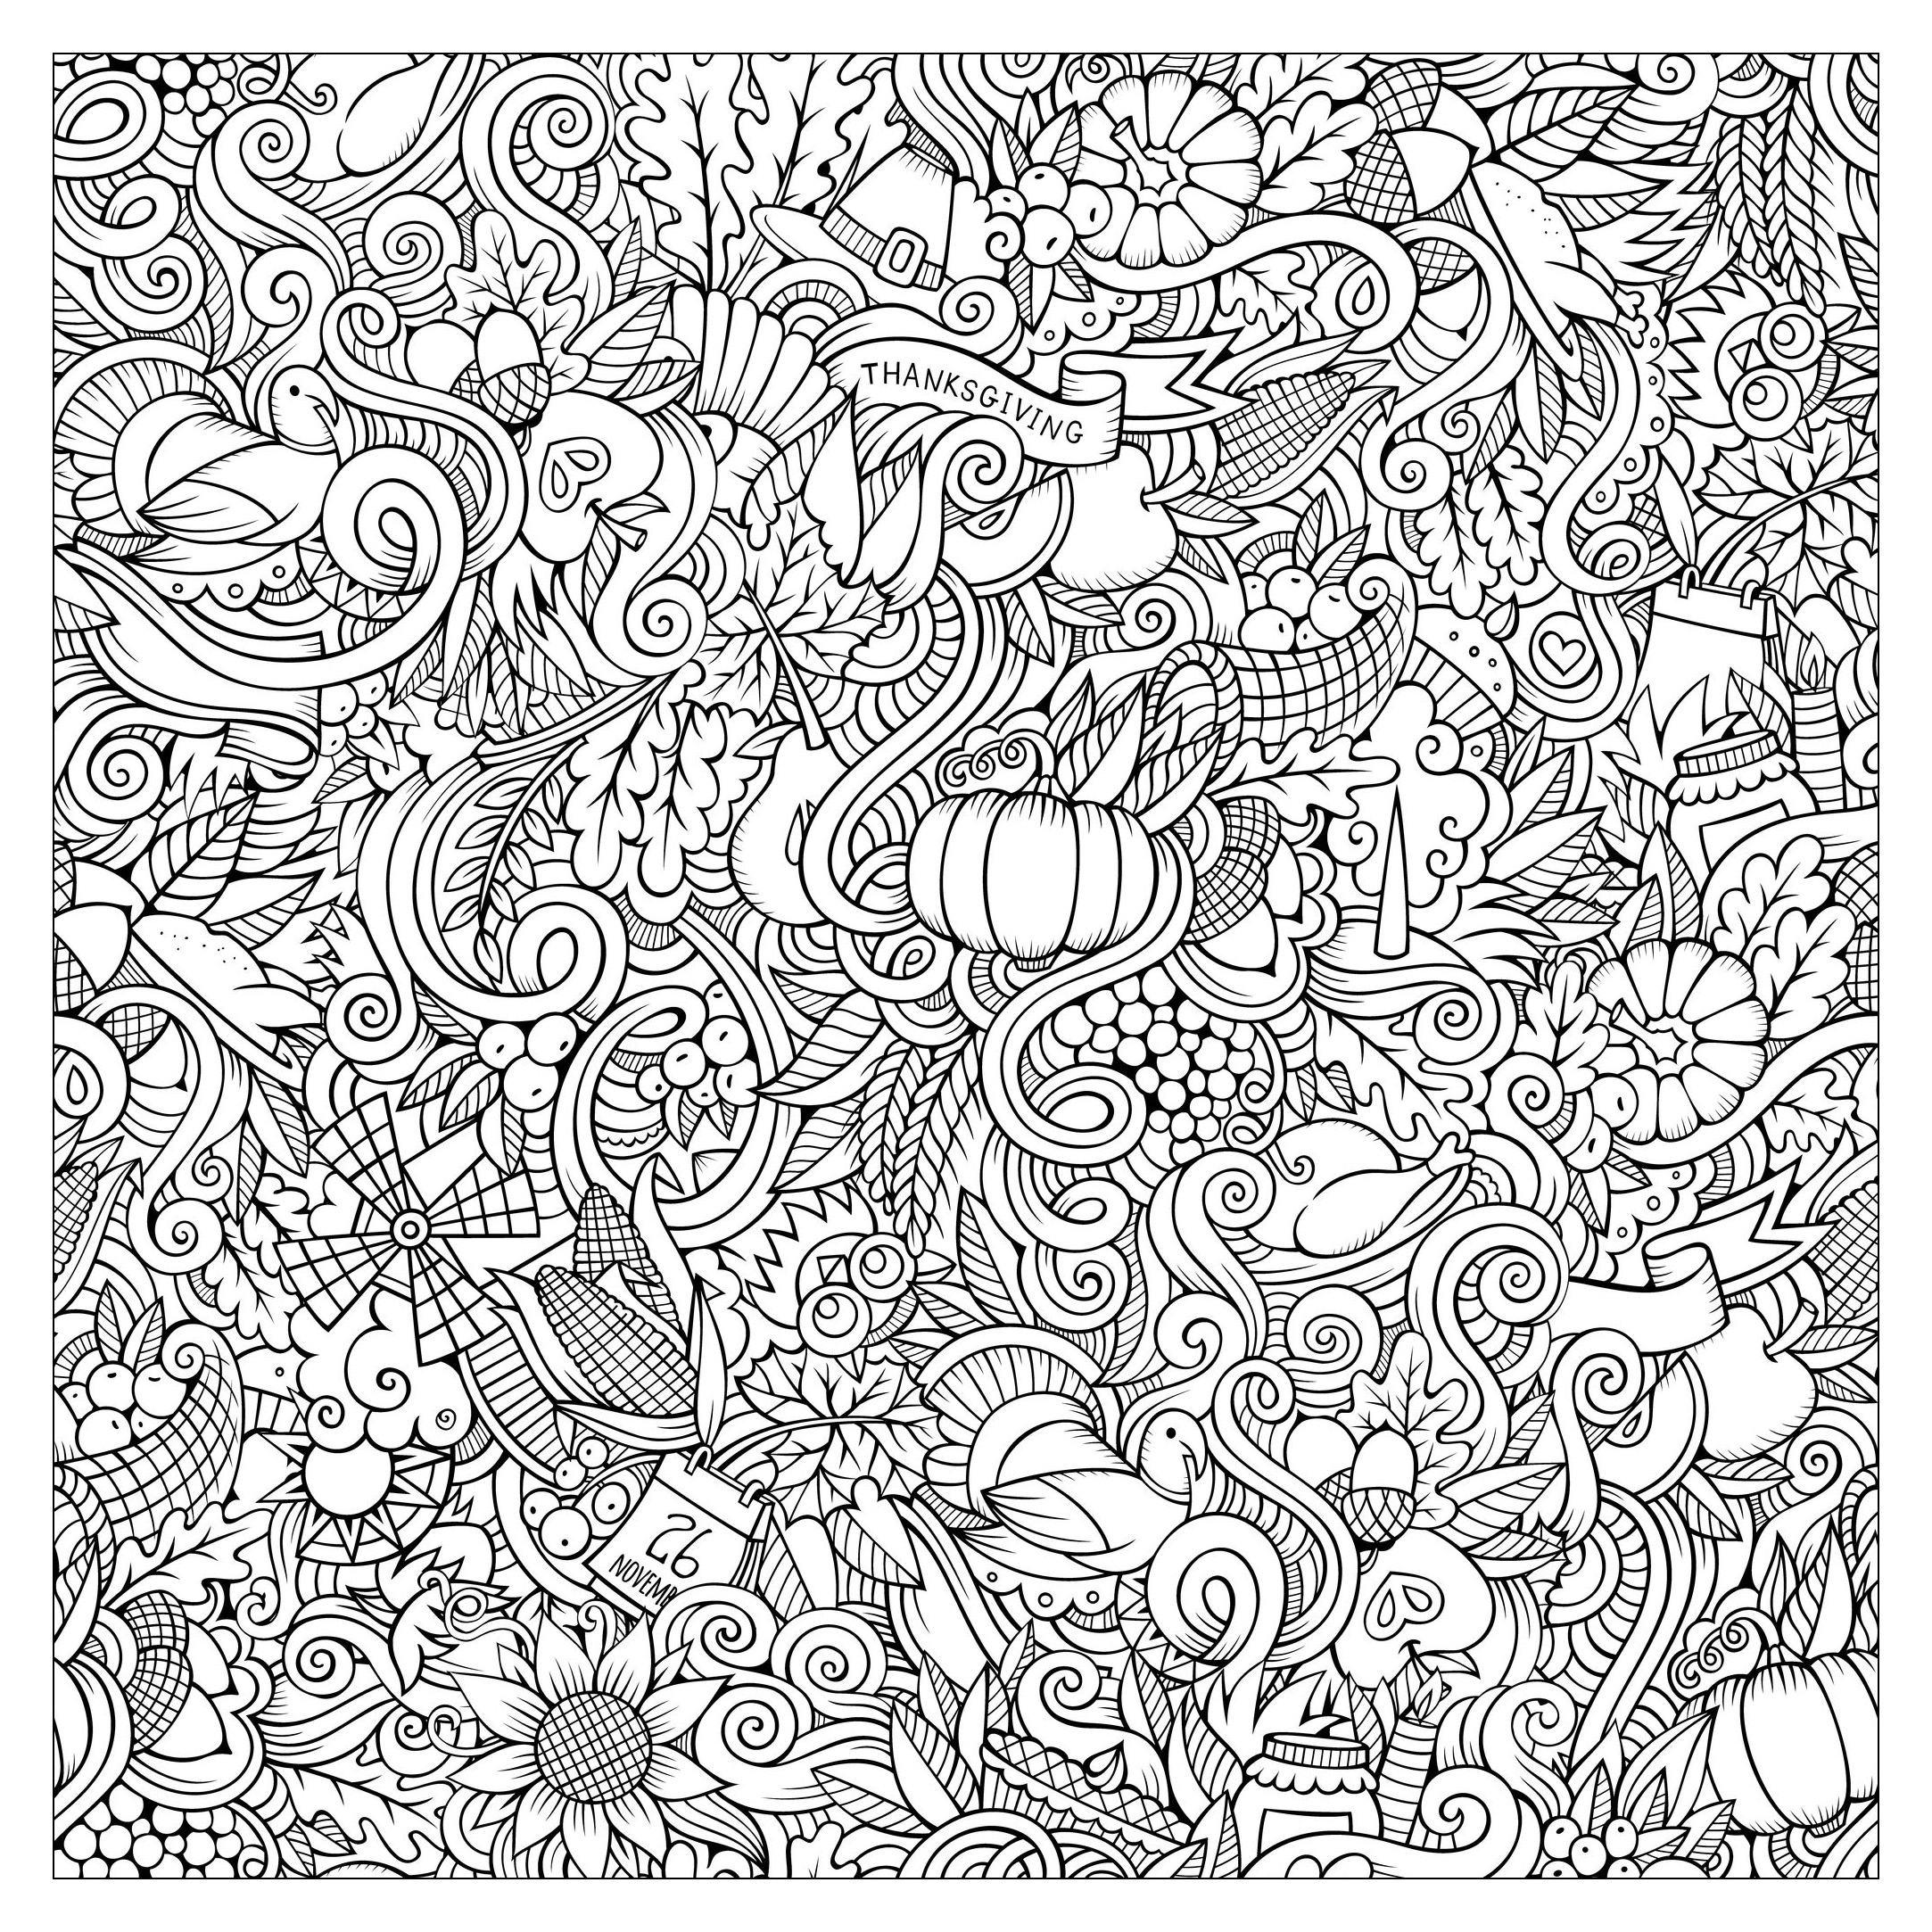 Cartoon vector hand drawn doodles : thanksgiving autumn symbols ...